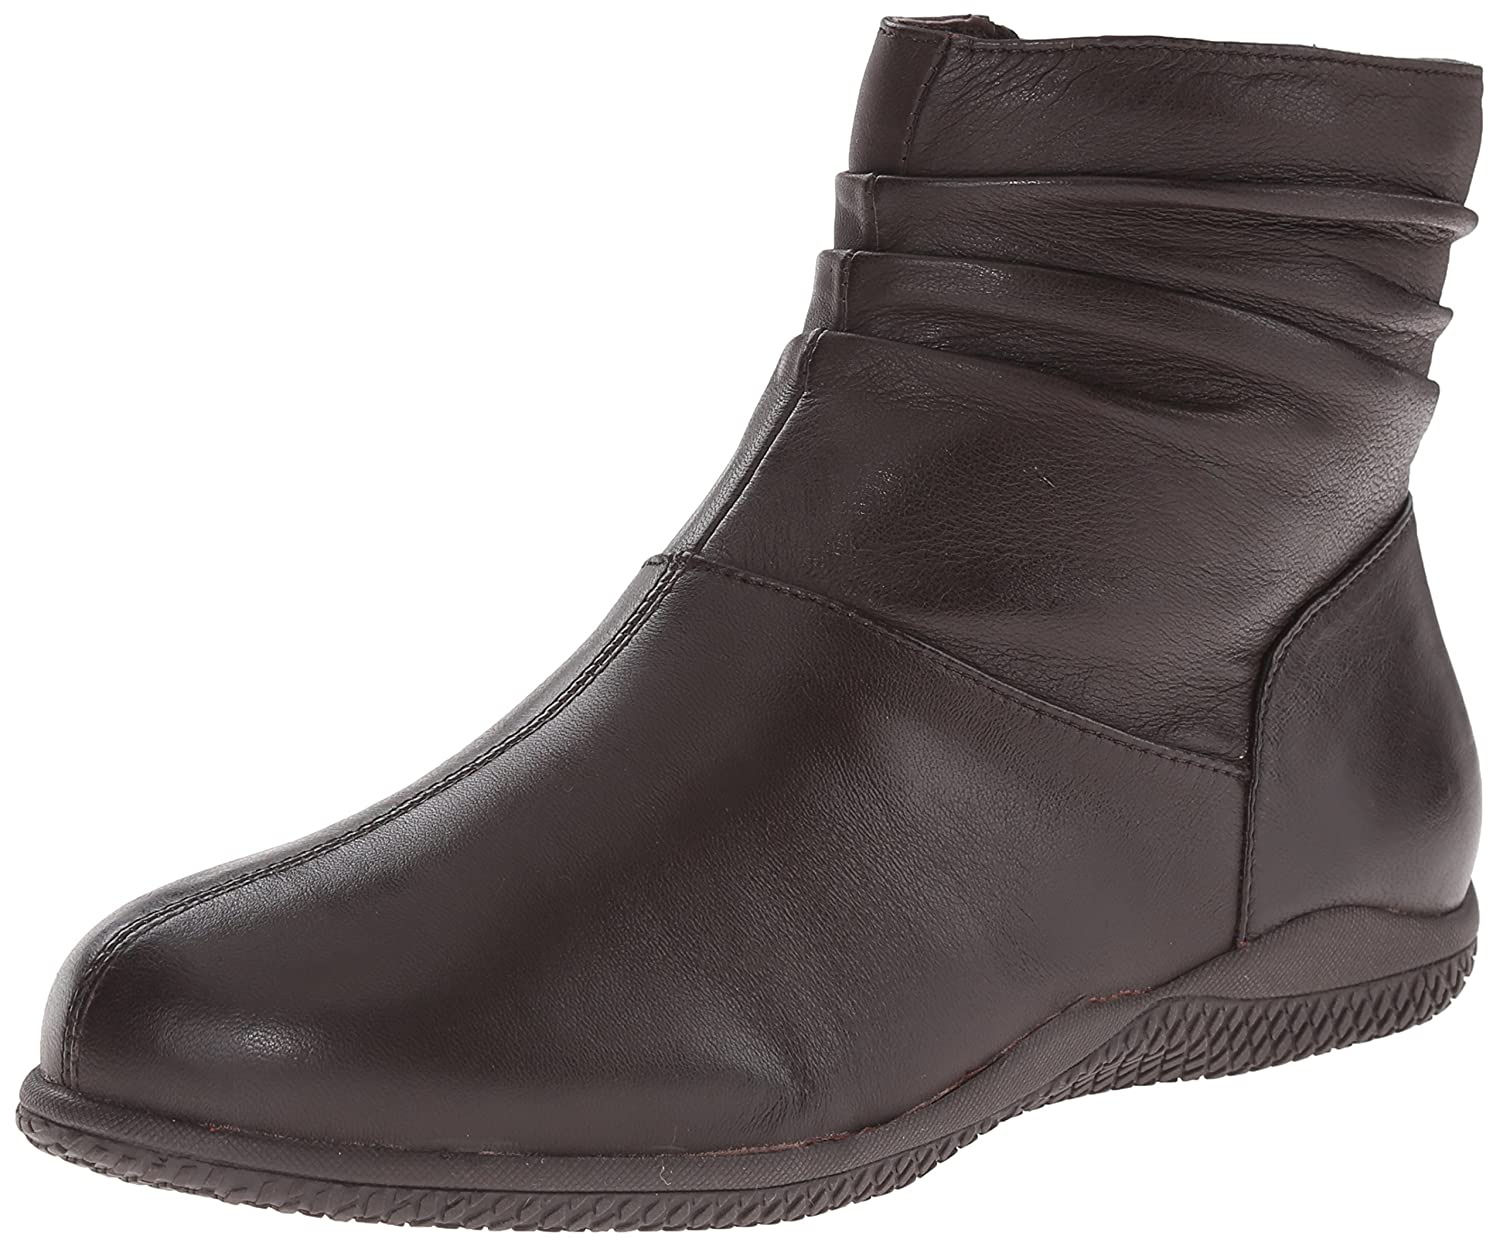 76676802fbb8 Amazon.com | SoftWalk Women's Hanover, Dark Brown 9 M US | Ankle & Bootie